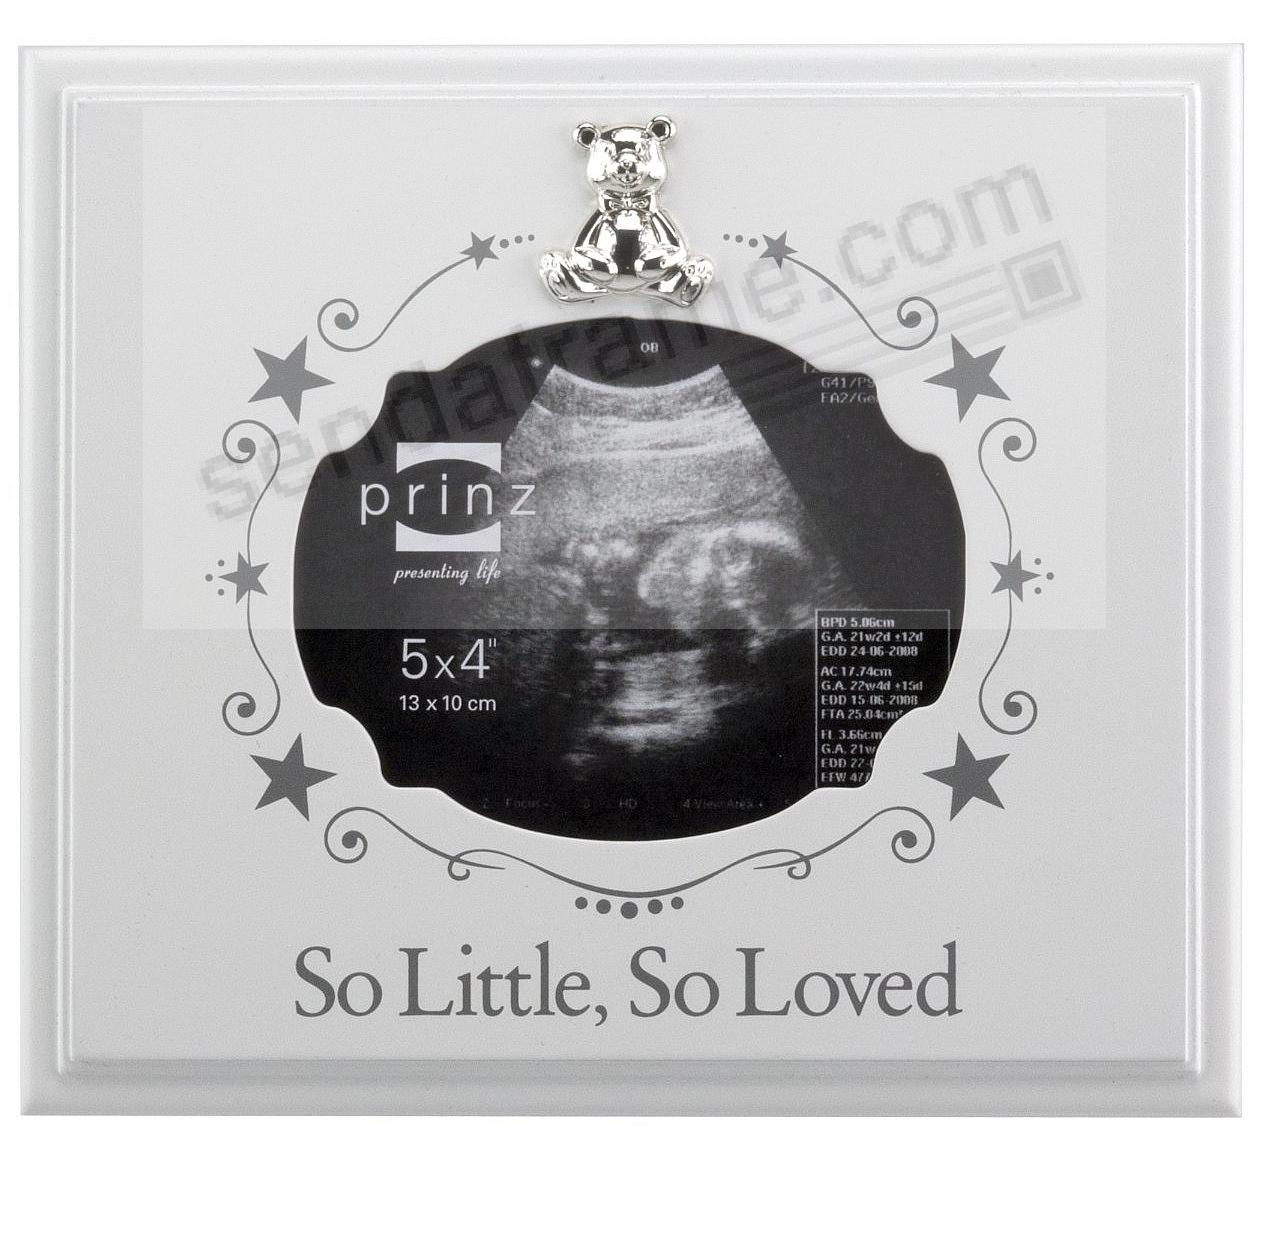 SO LITTLE - SO LOVED Silver Teddy Bear Sonogram frame by Prinz ...